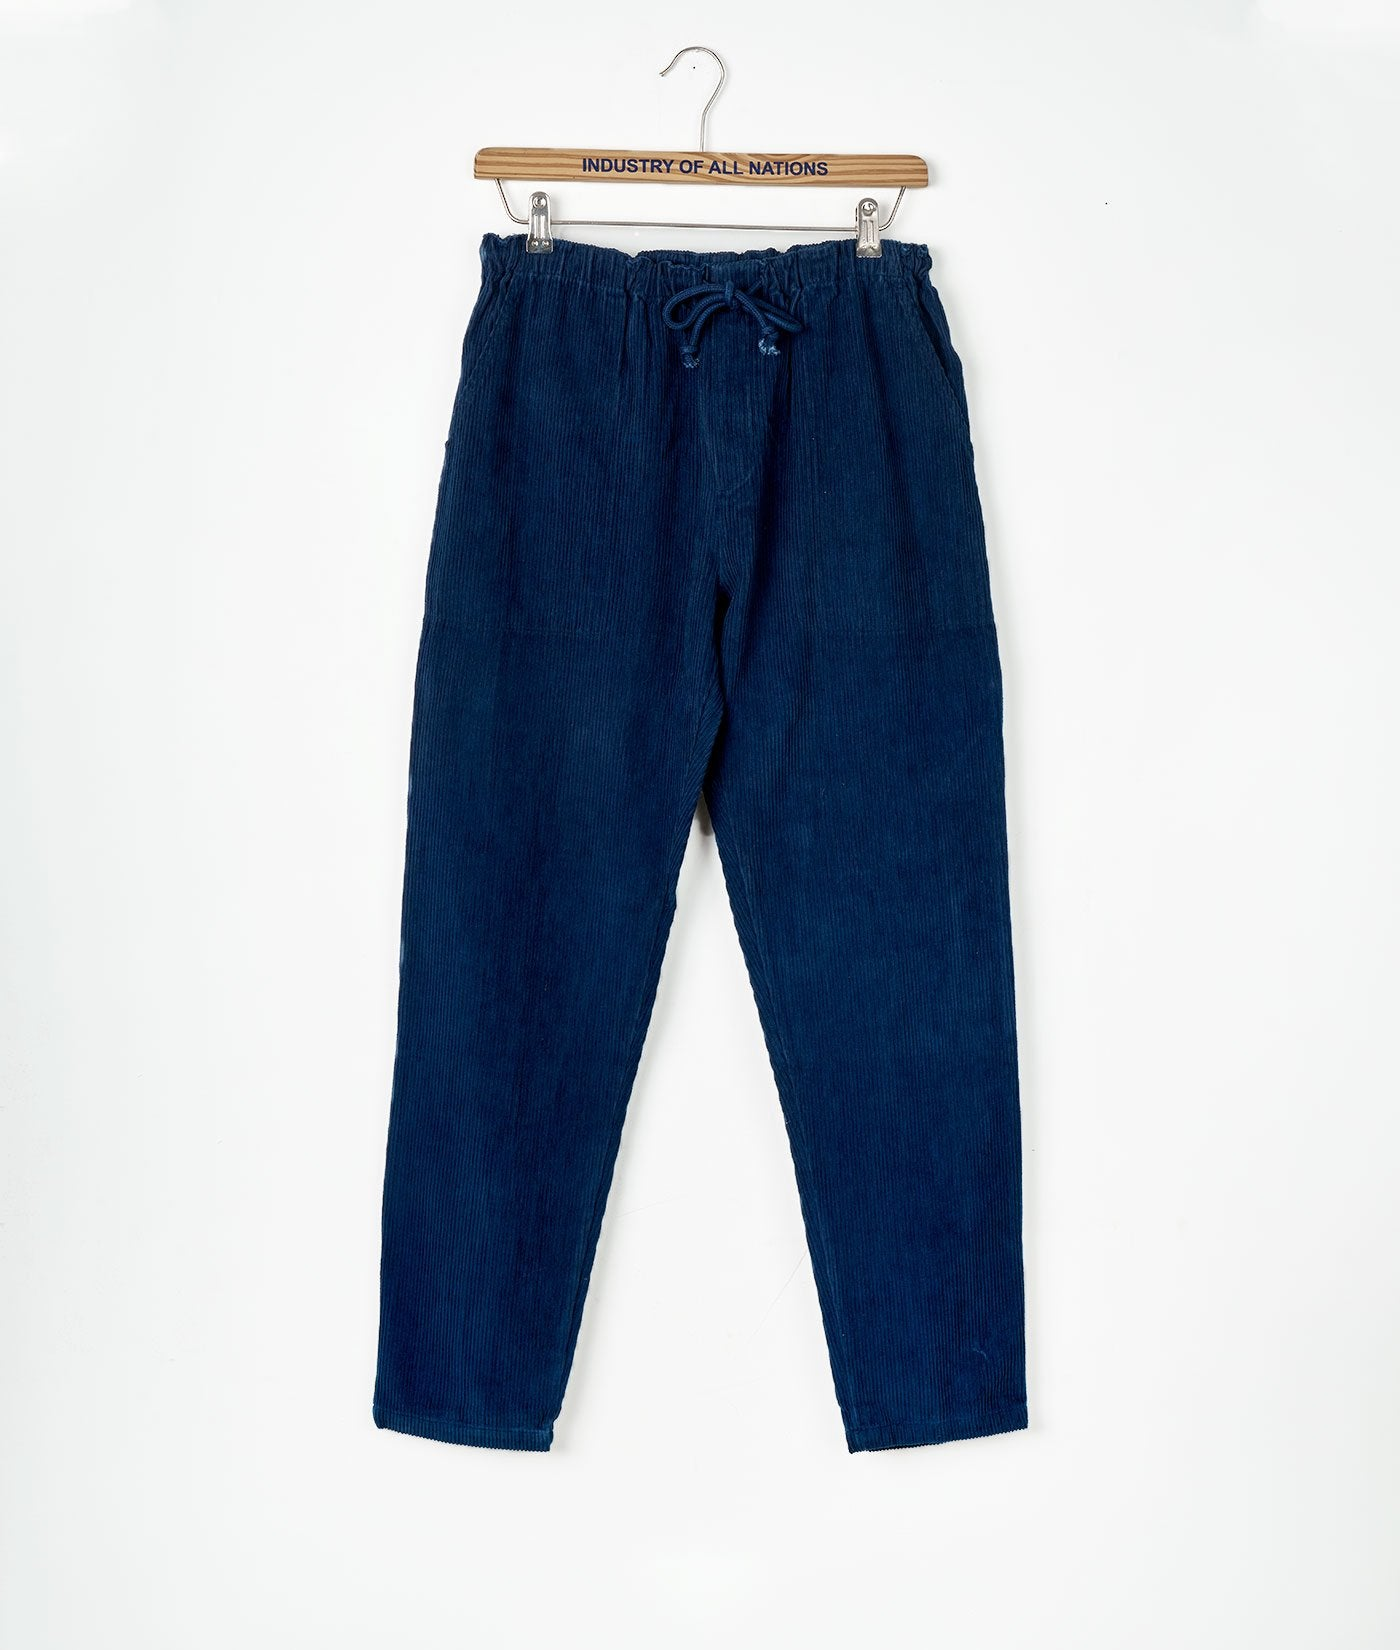 Industry of All Nations Organic Cotton Drawstring Corduroy Pants Indigo 12